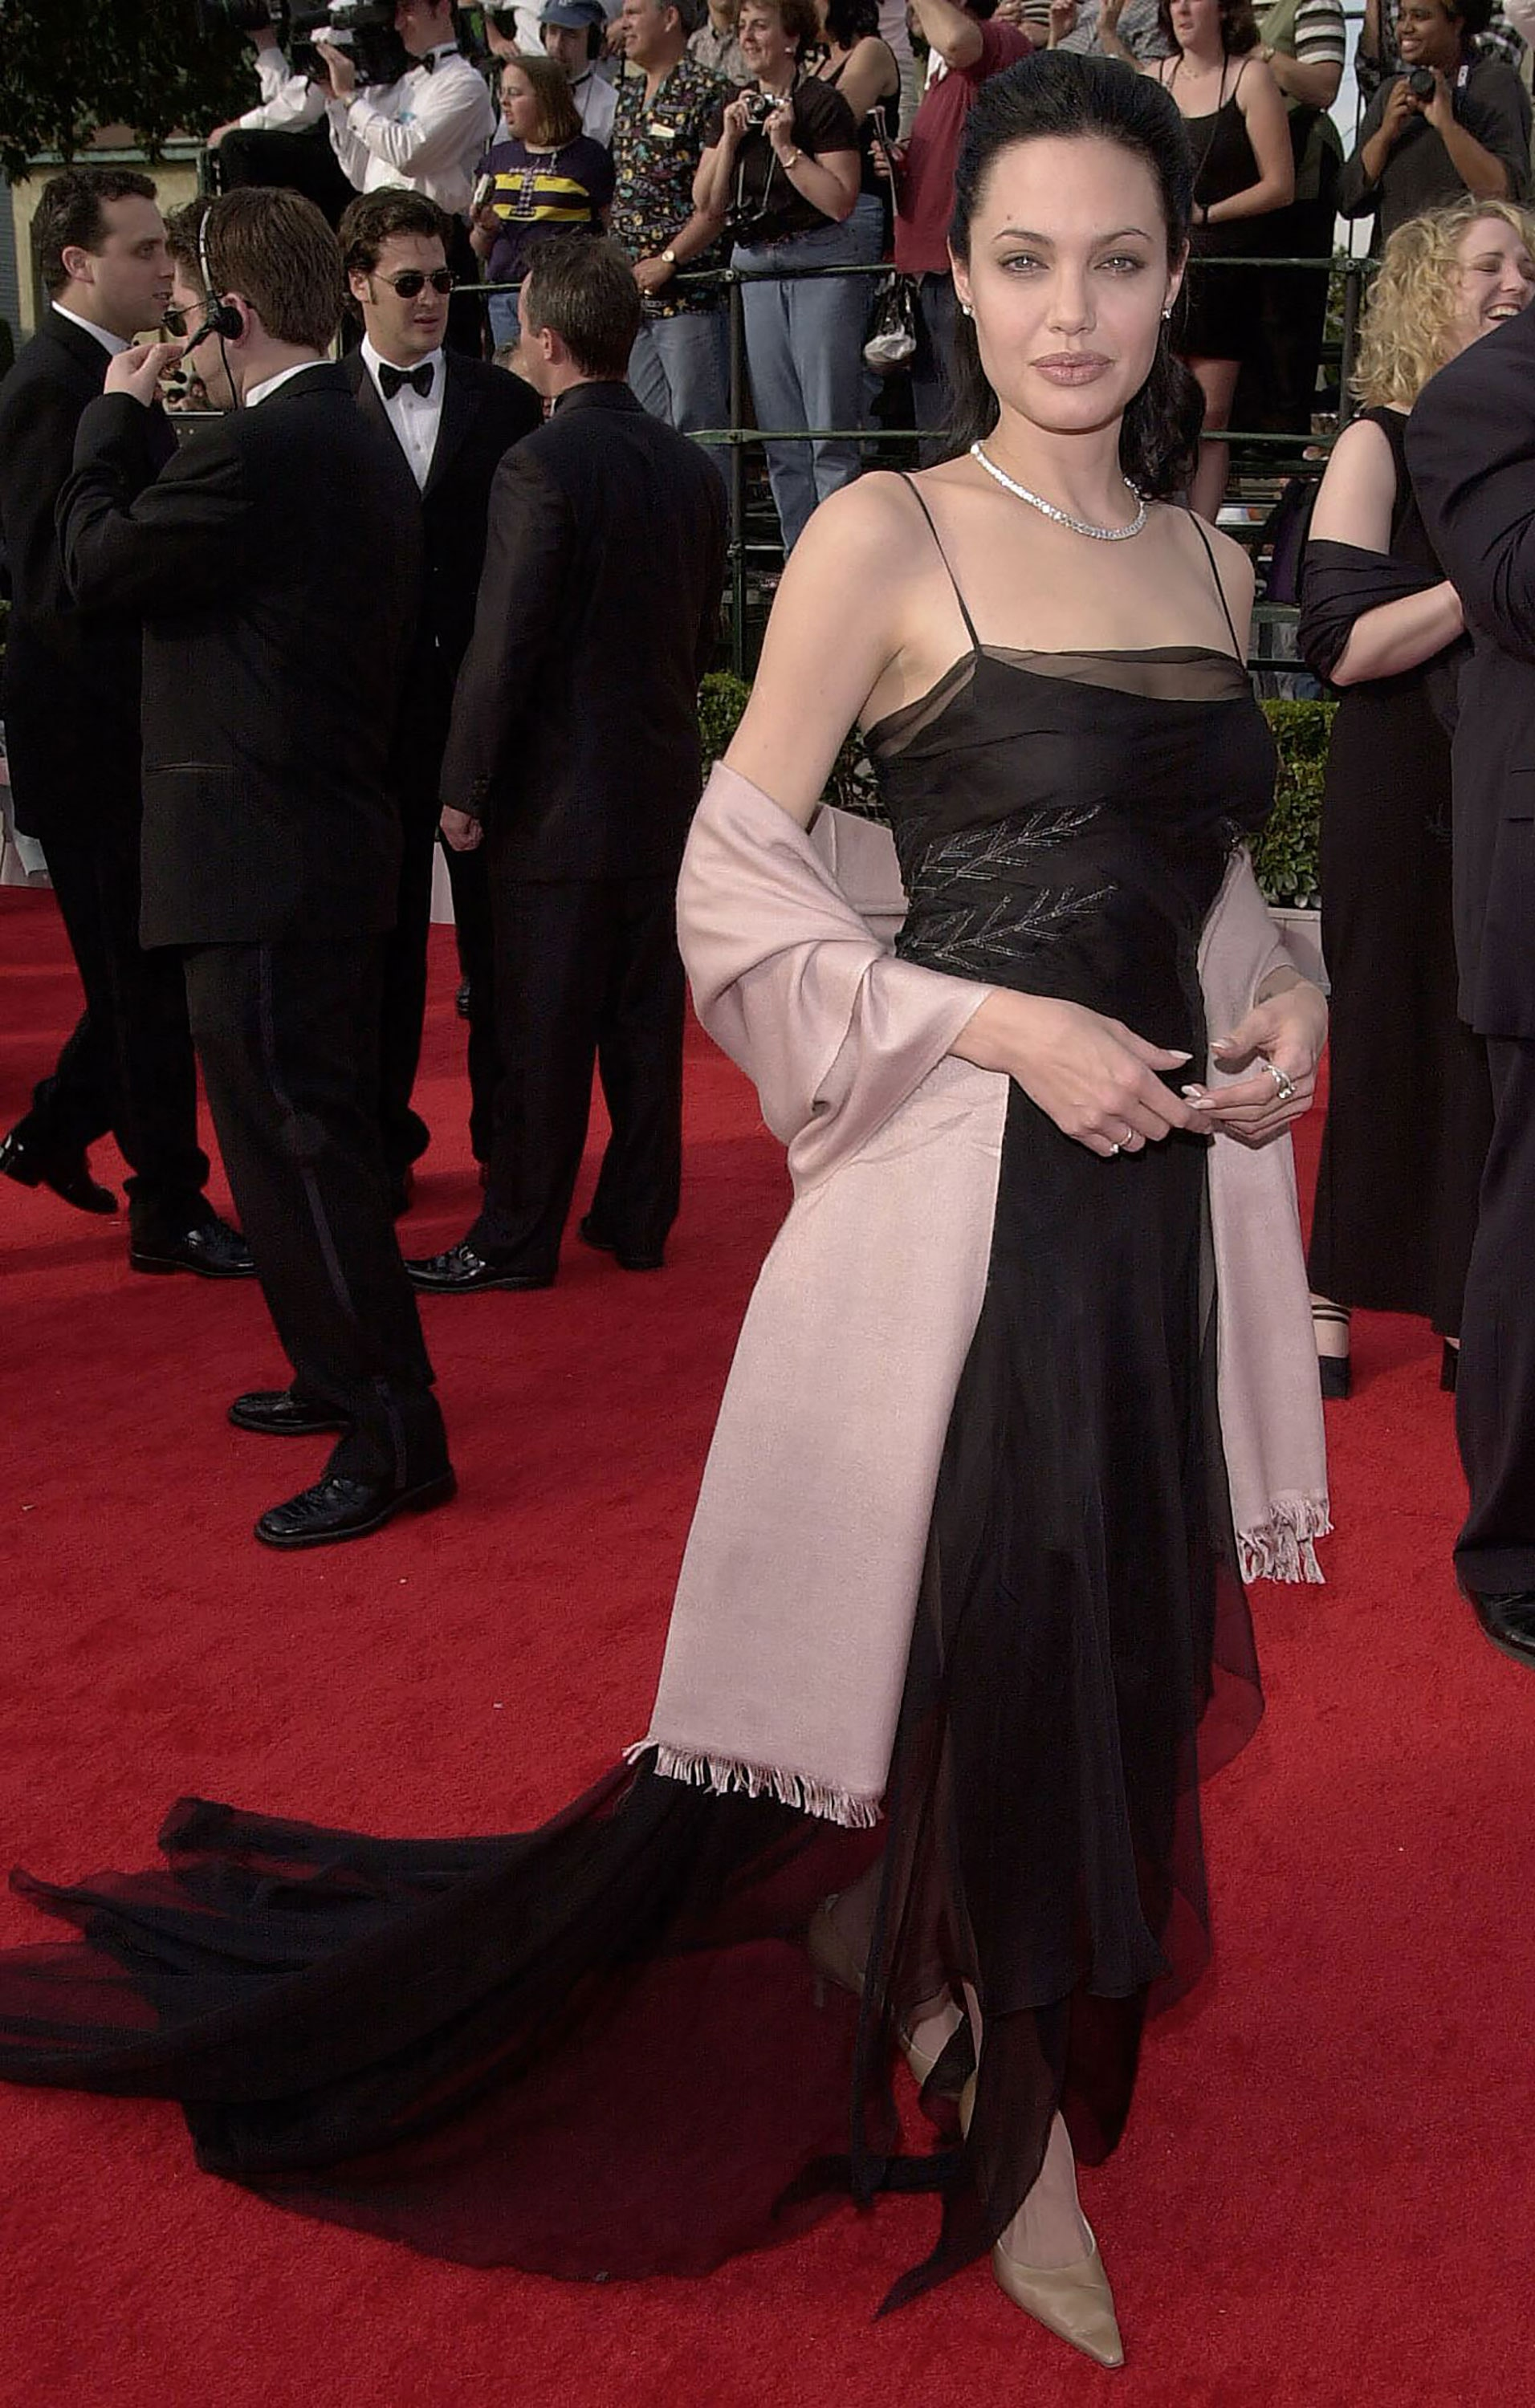 Angelina Jolie's Fashionable Looks That Untie The Knots Of Elegance and Snobbery 1